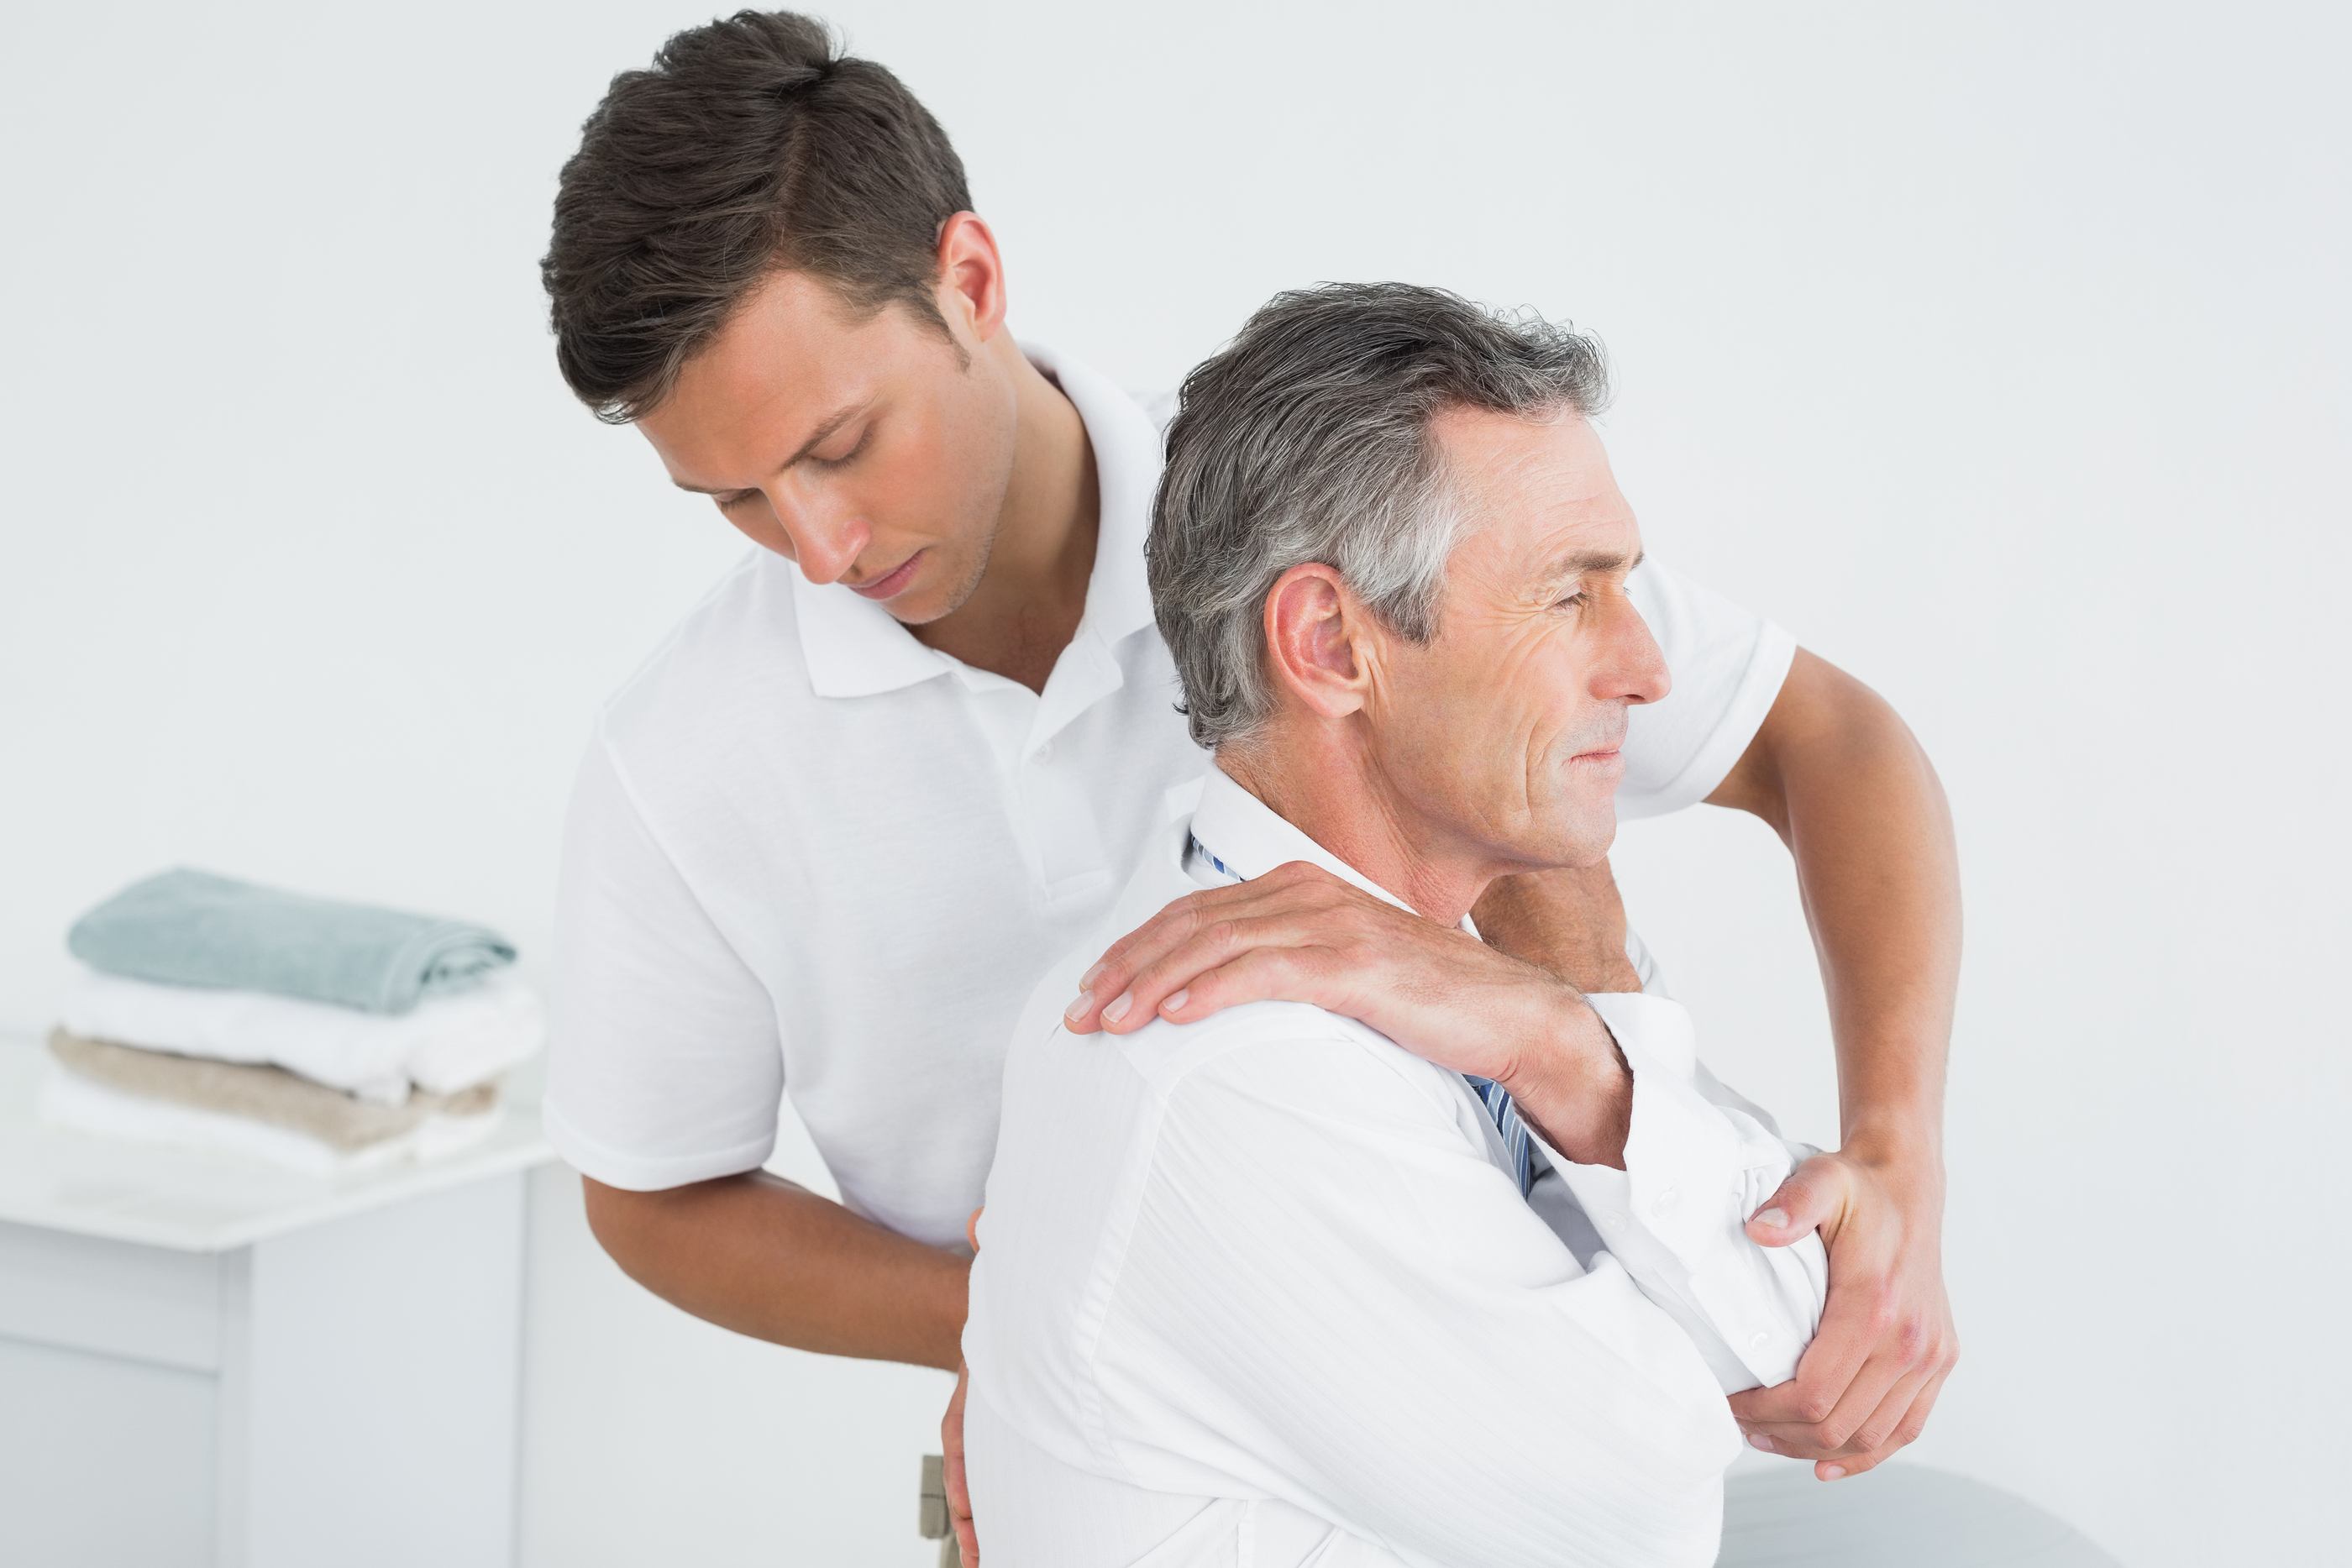 Accident Clinic Coral Gables Focuses On Chiropractic Care Immediately Following a Car Accident